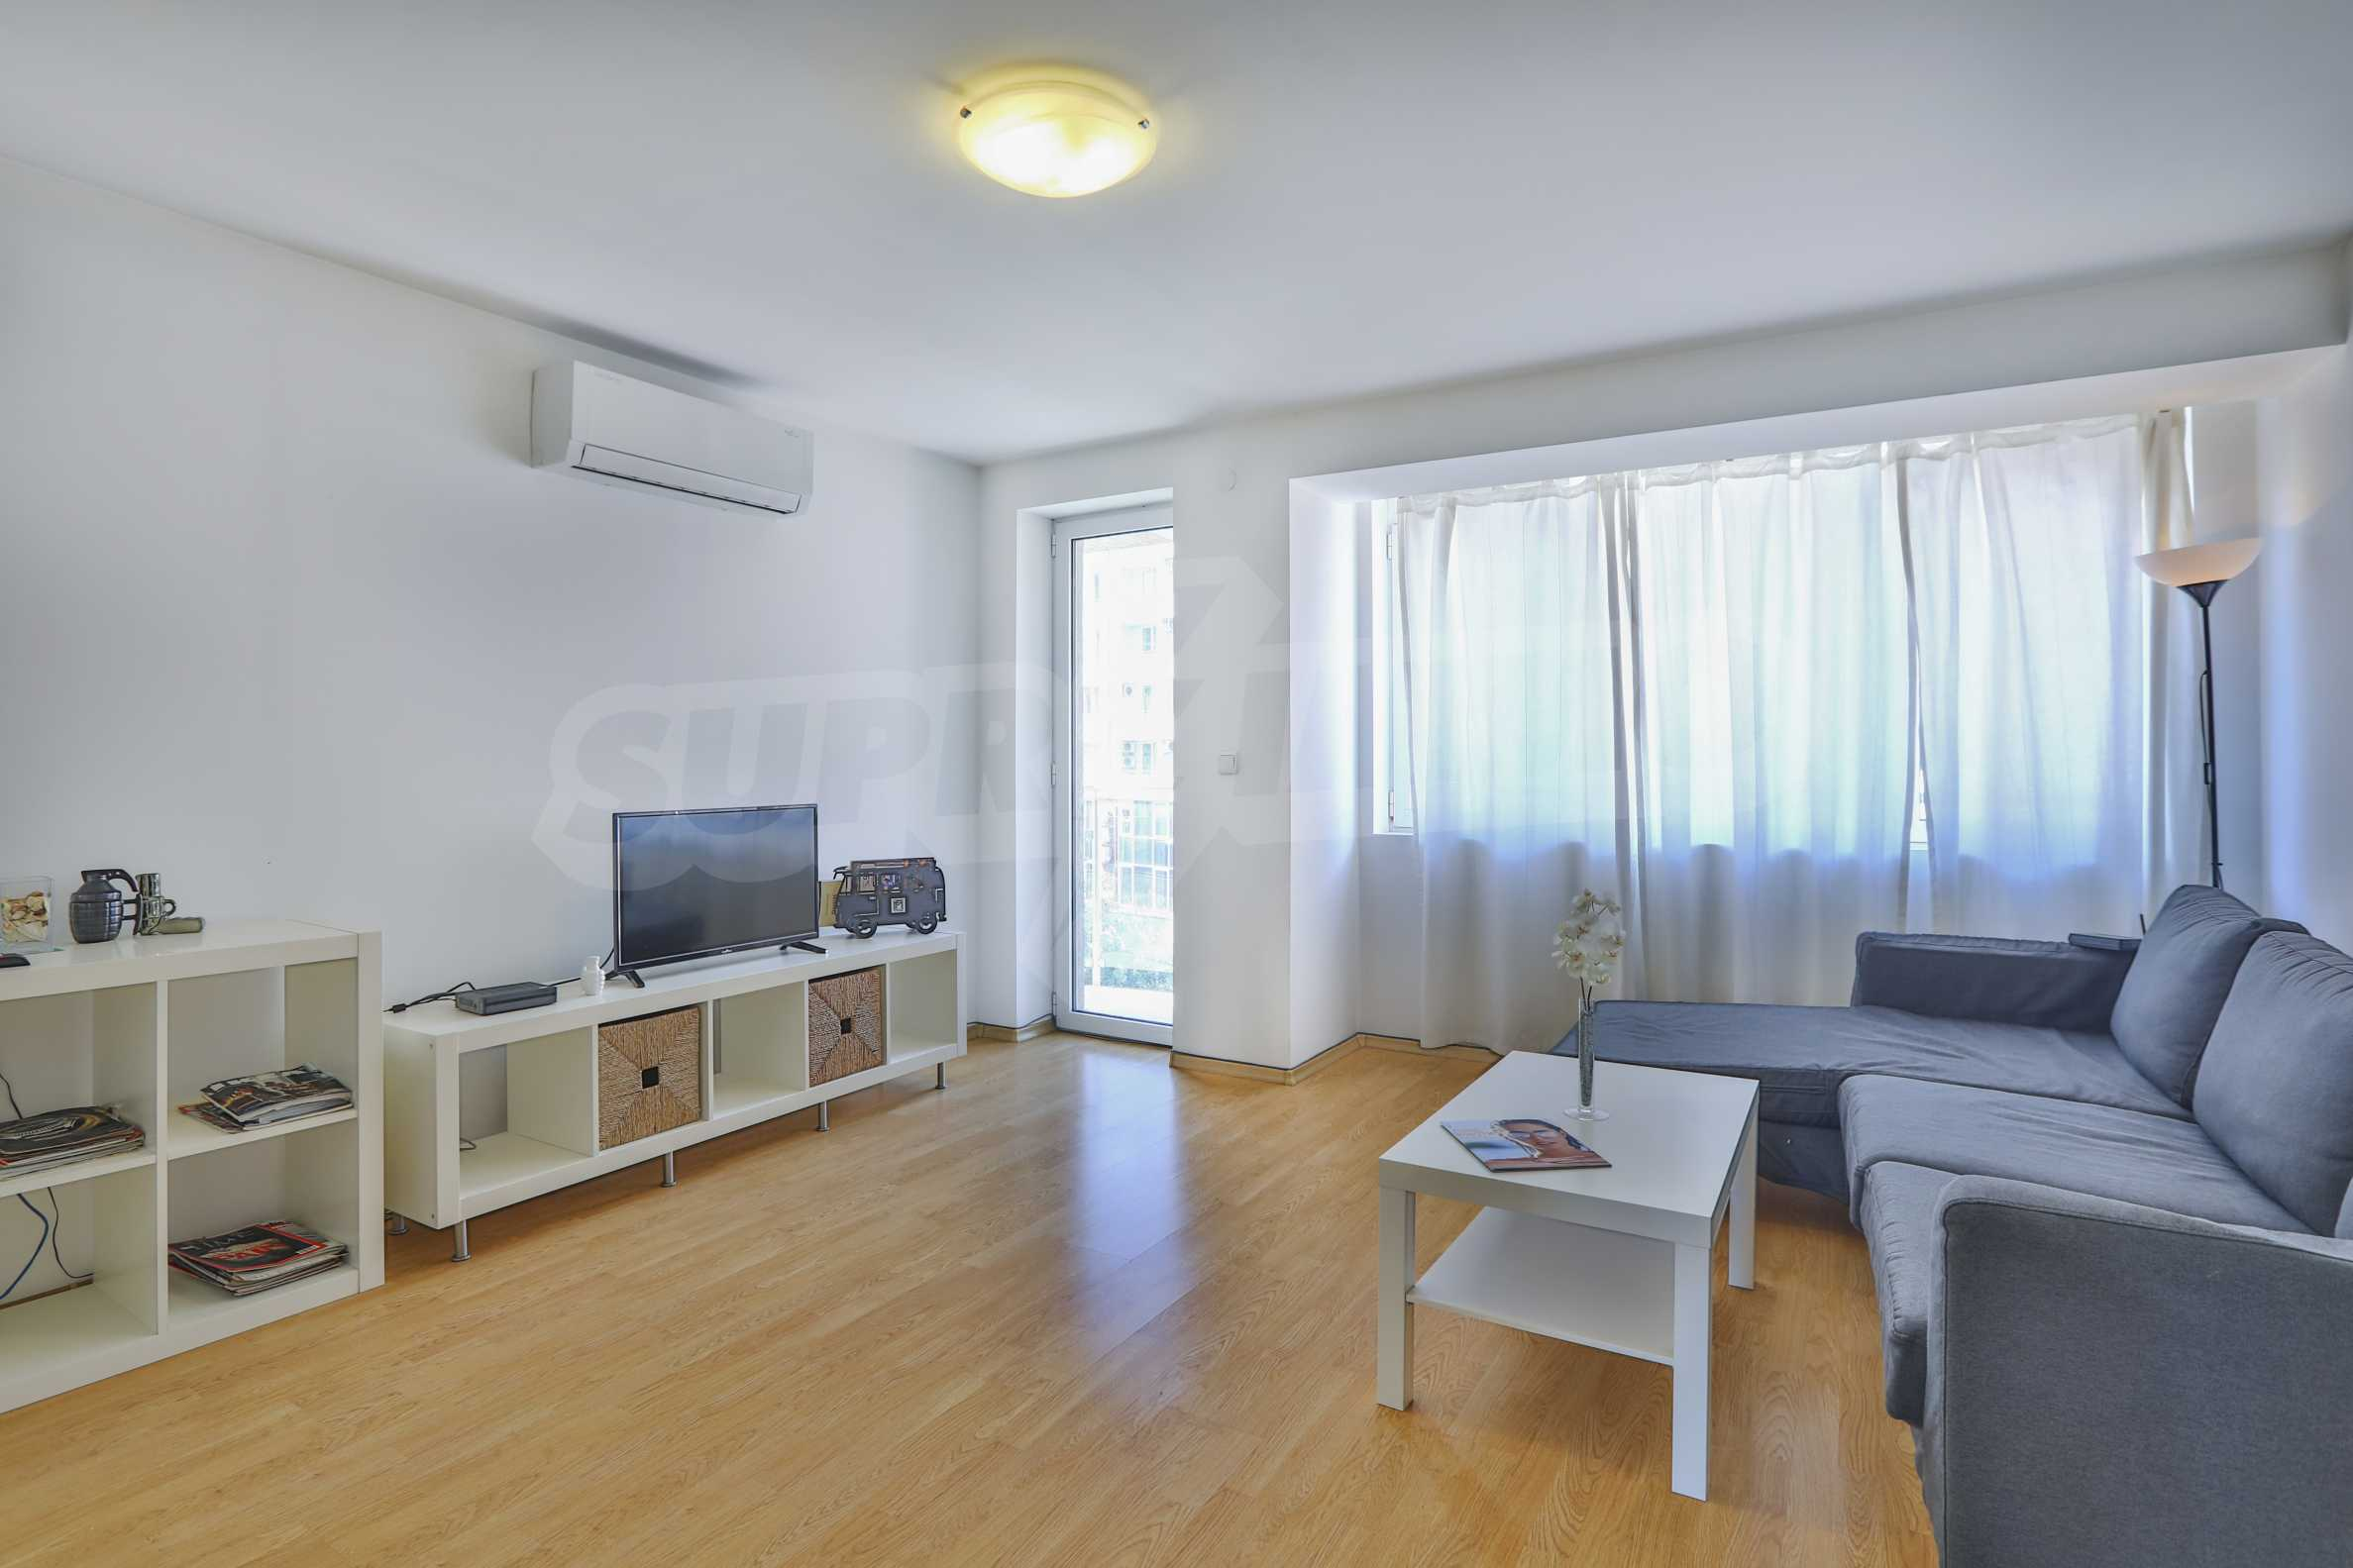 Two-bedroom apartment in the center with high rating on Airbnb 6